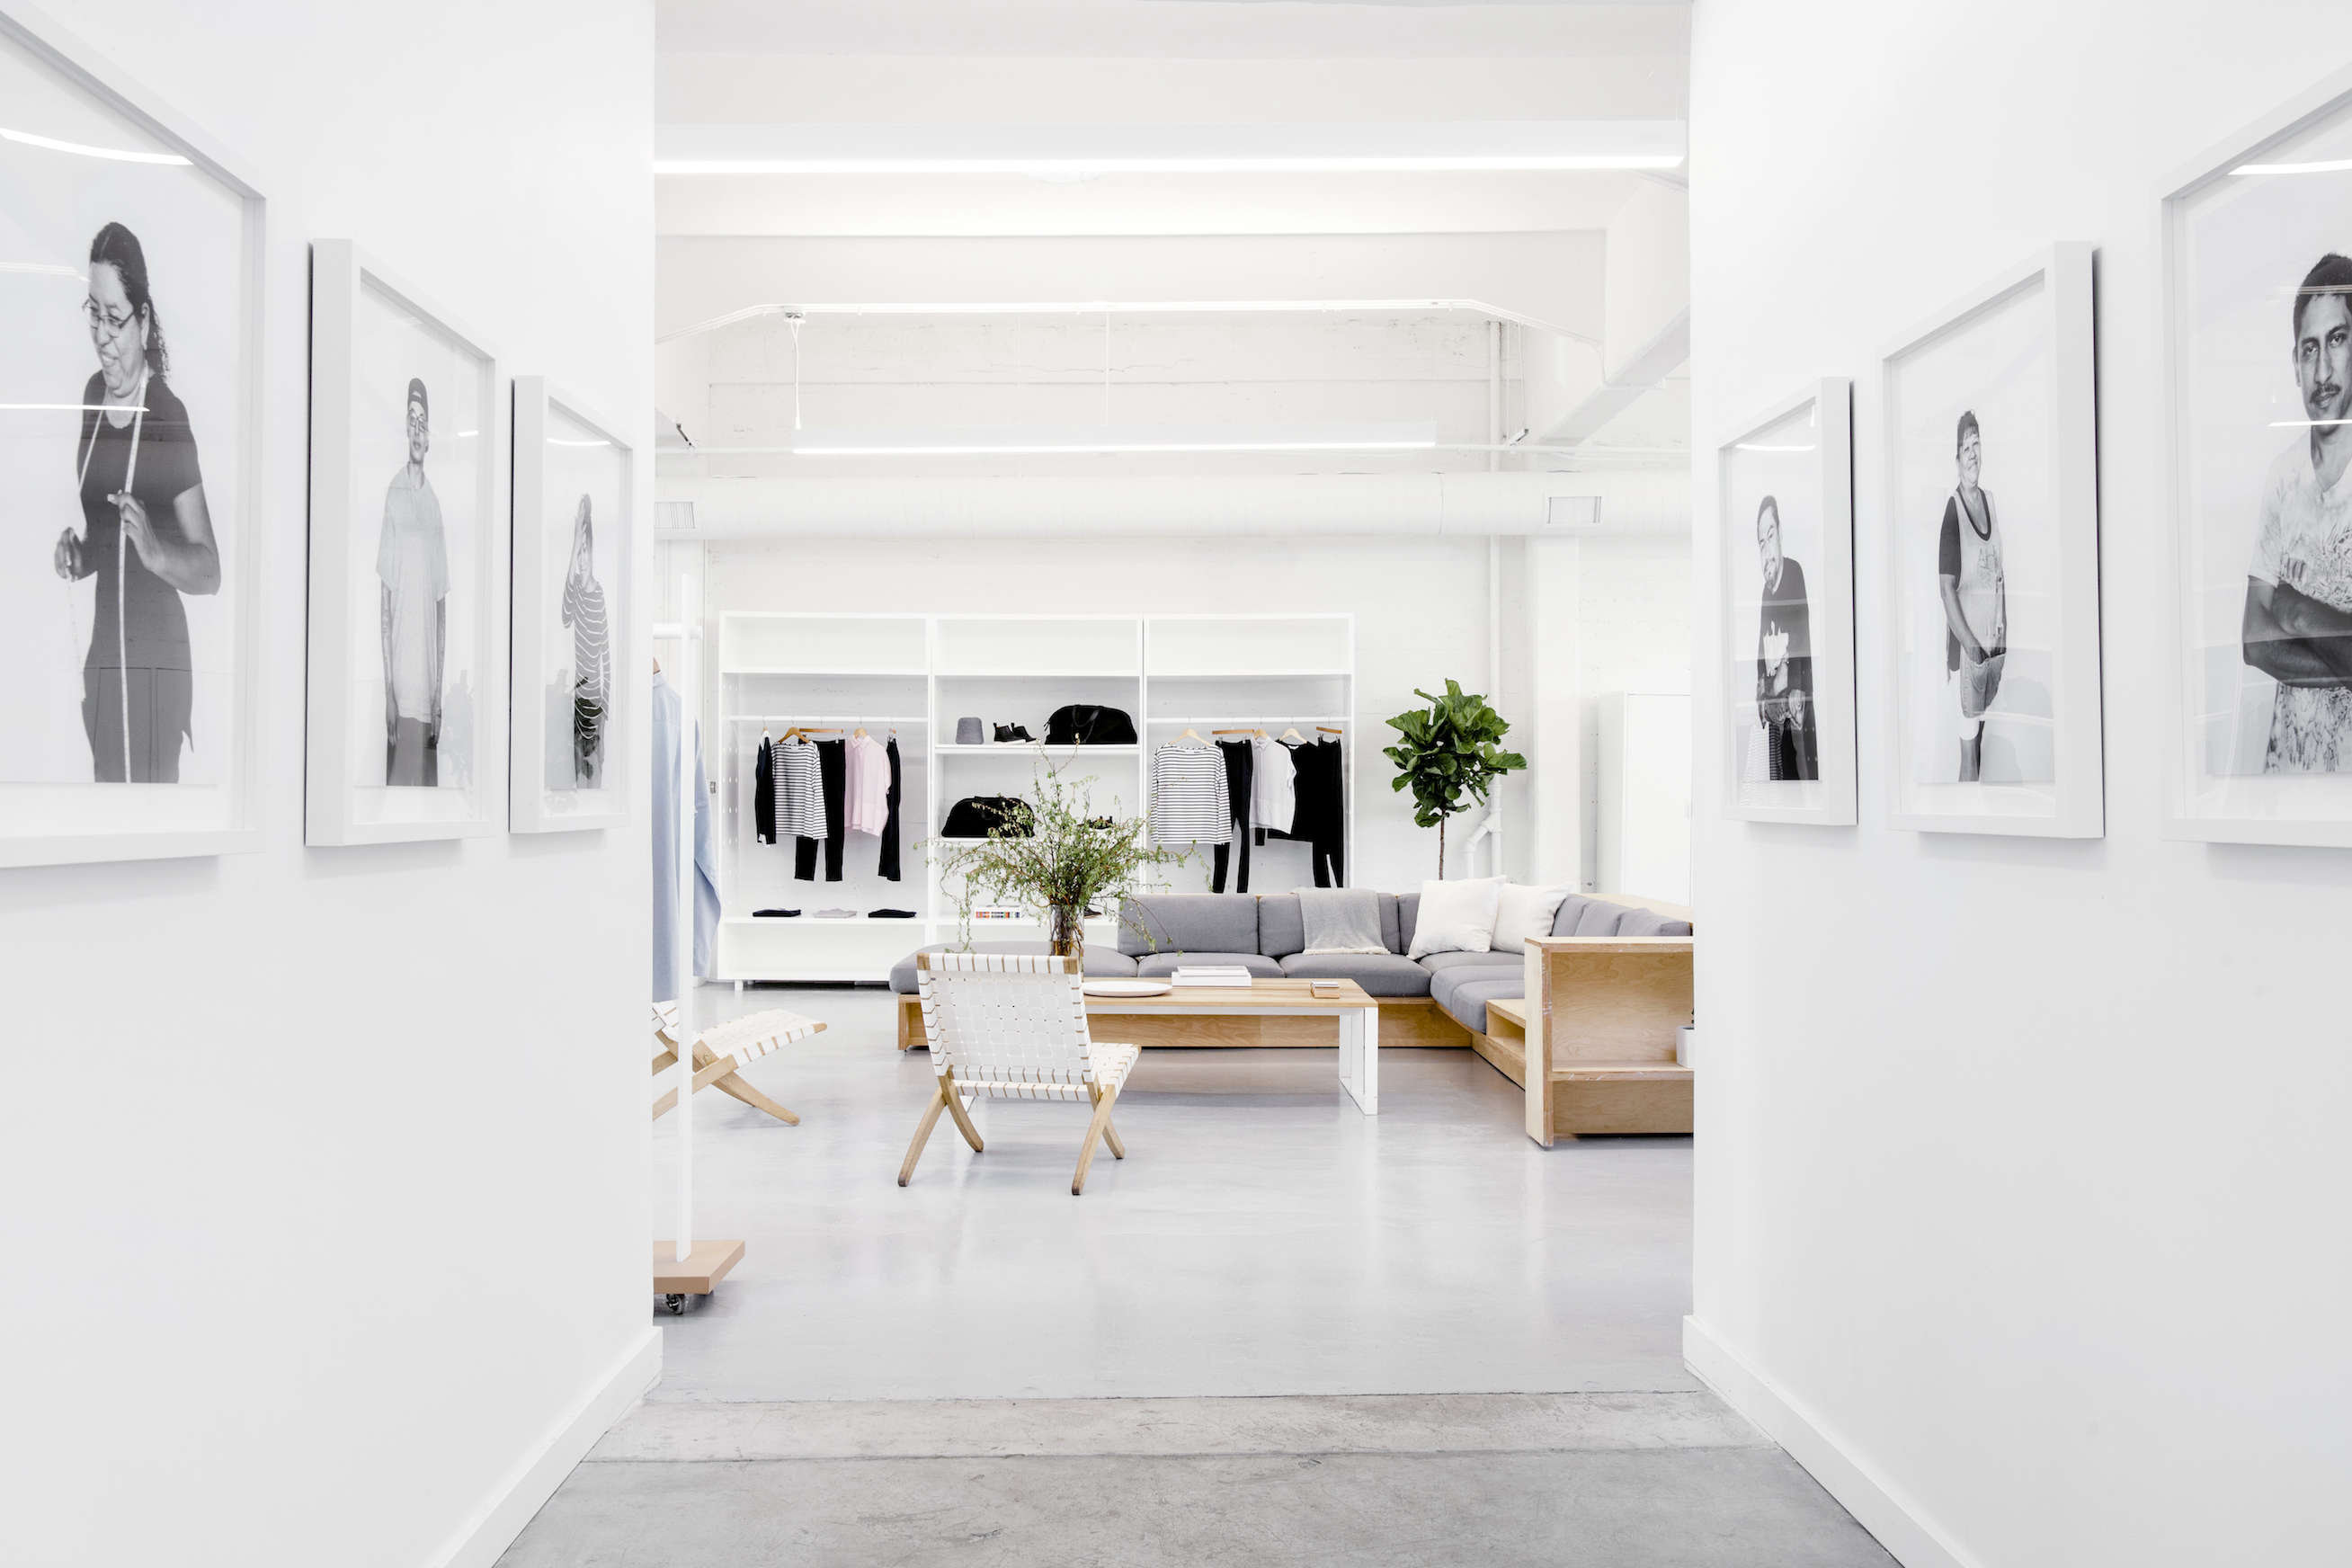 Factory worker portraits in Everlane's lofty white office in SF, Carlos Chavarría photo | Remodelista